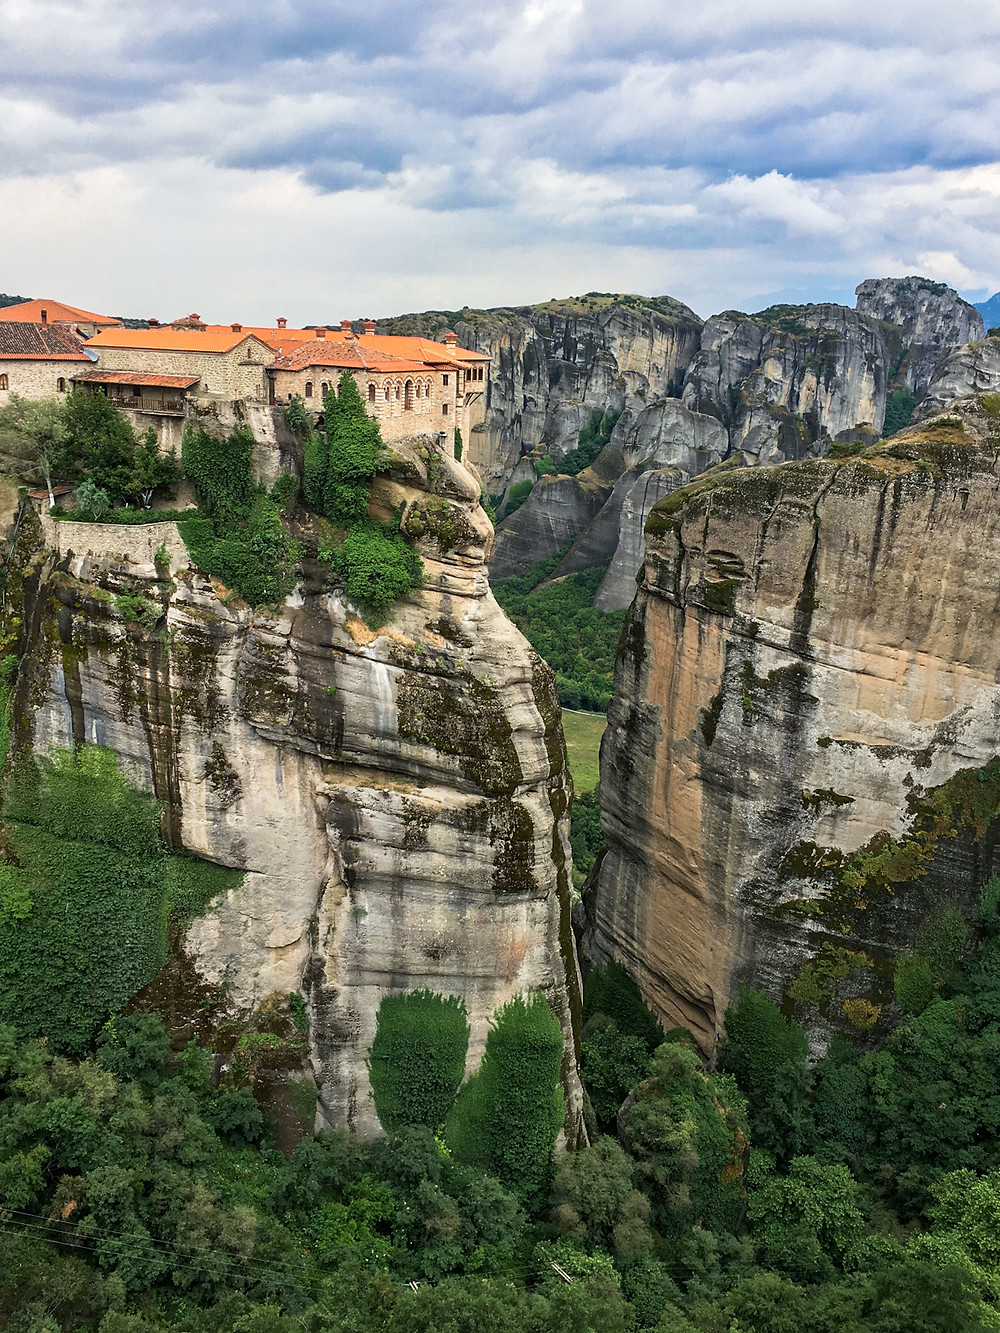 An orange-roofed monastery on a rock pillar in Meteora, Greece among the other cliffs behind and greenery below